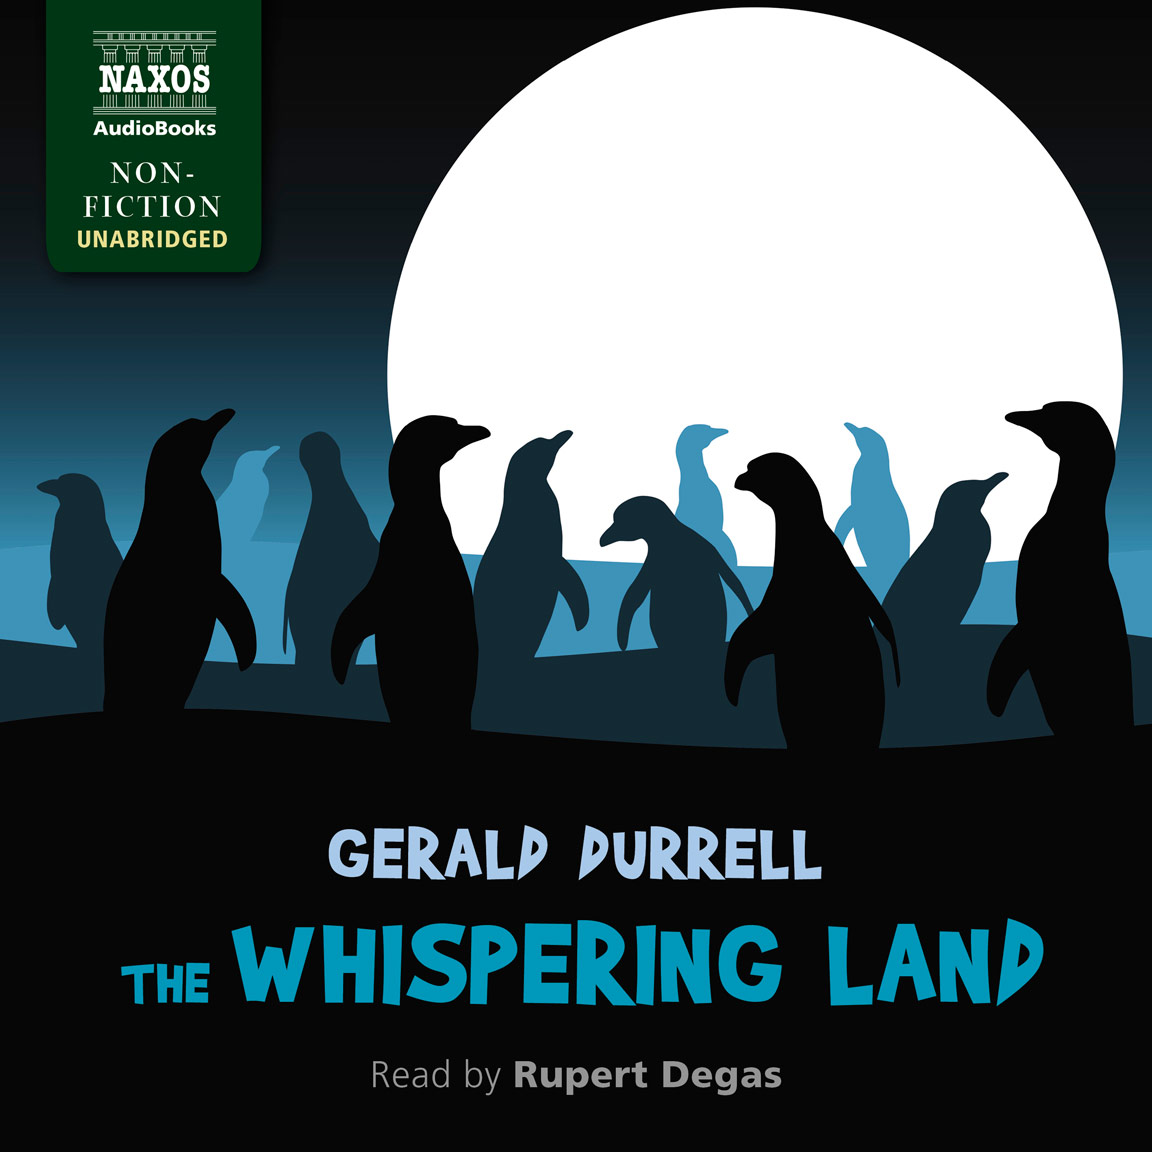 The Whispering Land (unabridged)